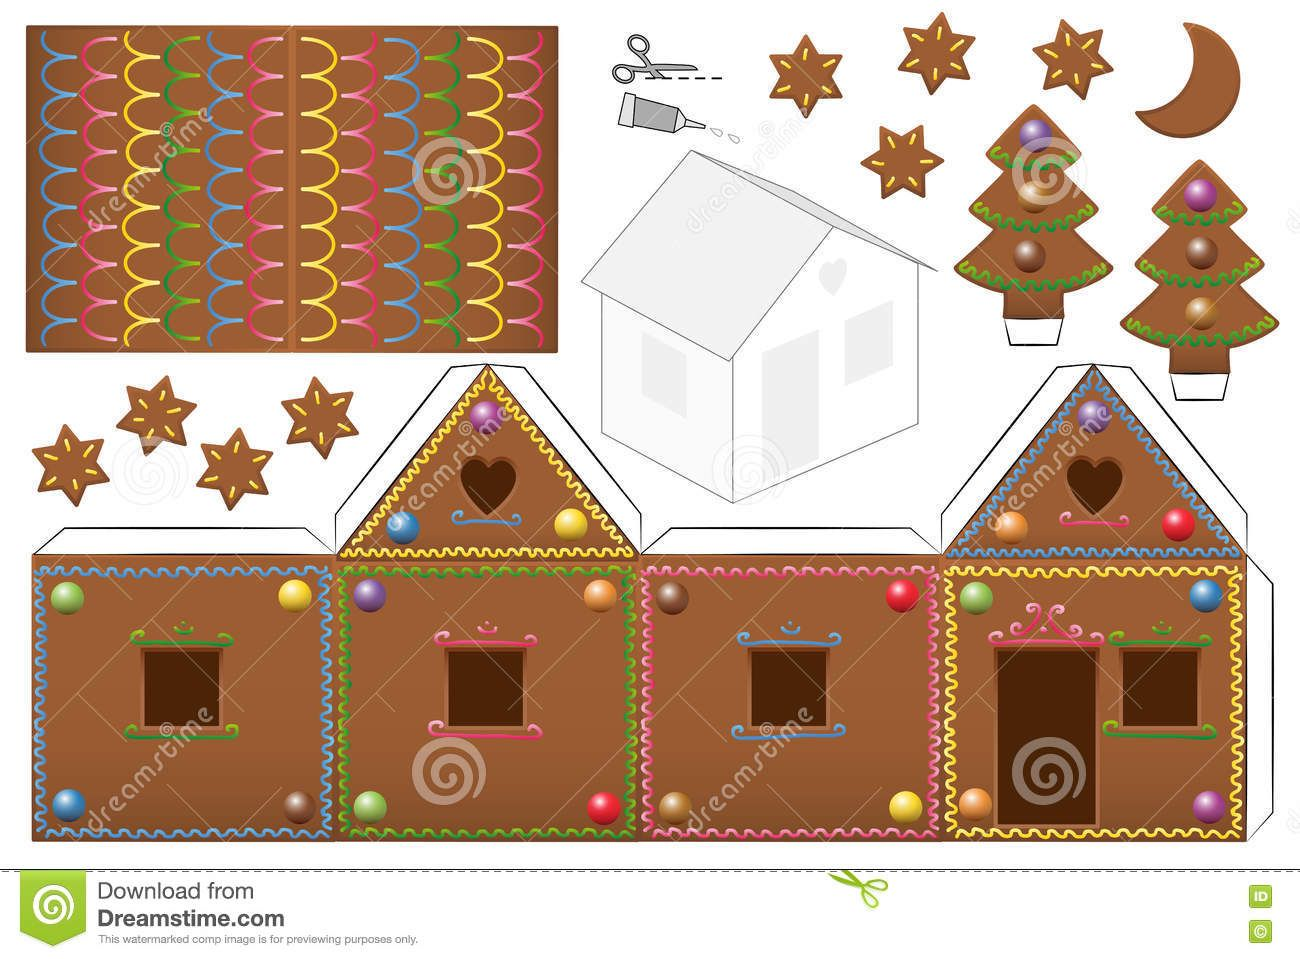 Gingerbread house candies paper model download from over 47 million high quality stock photos